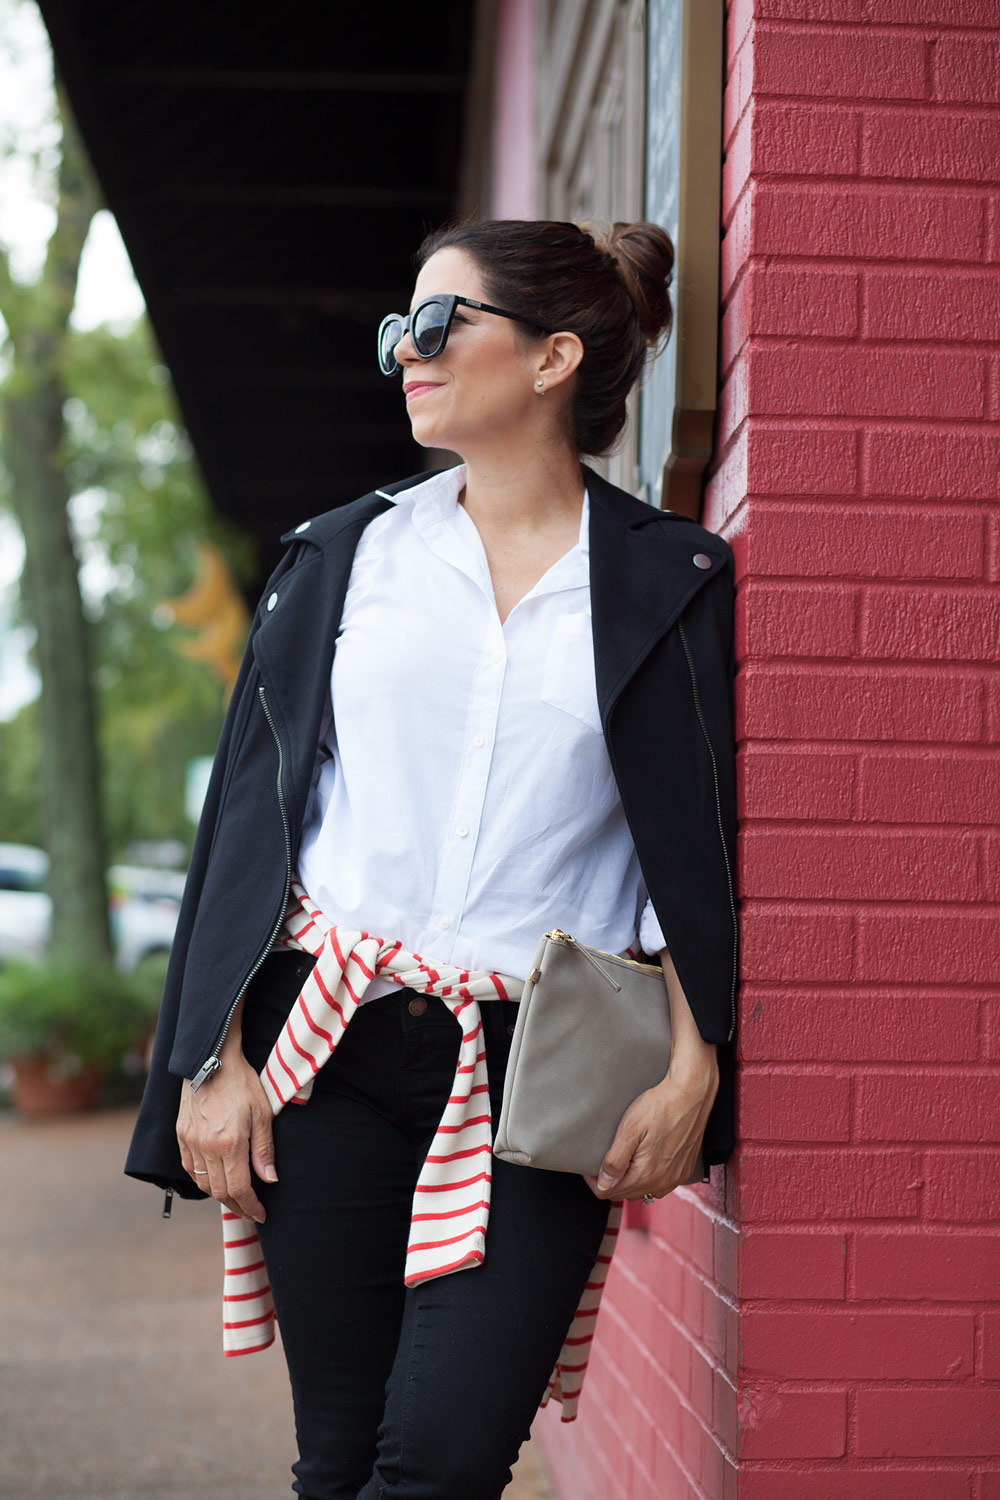 old-navy-fall-outfit-ideas-what-to-wear-casual-look-maternity-style-corporate-catwalk-new-york-fashion-blogger-nyc-12